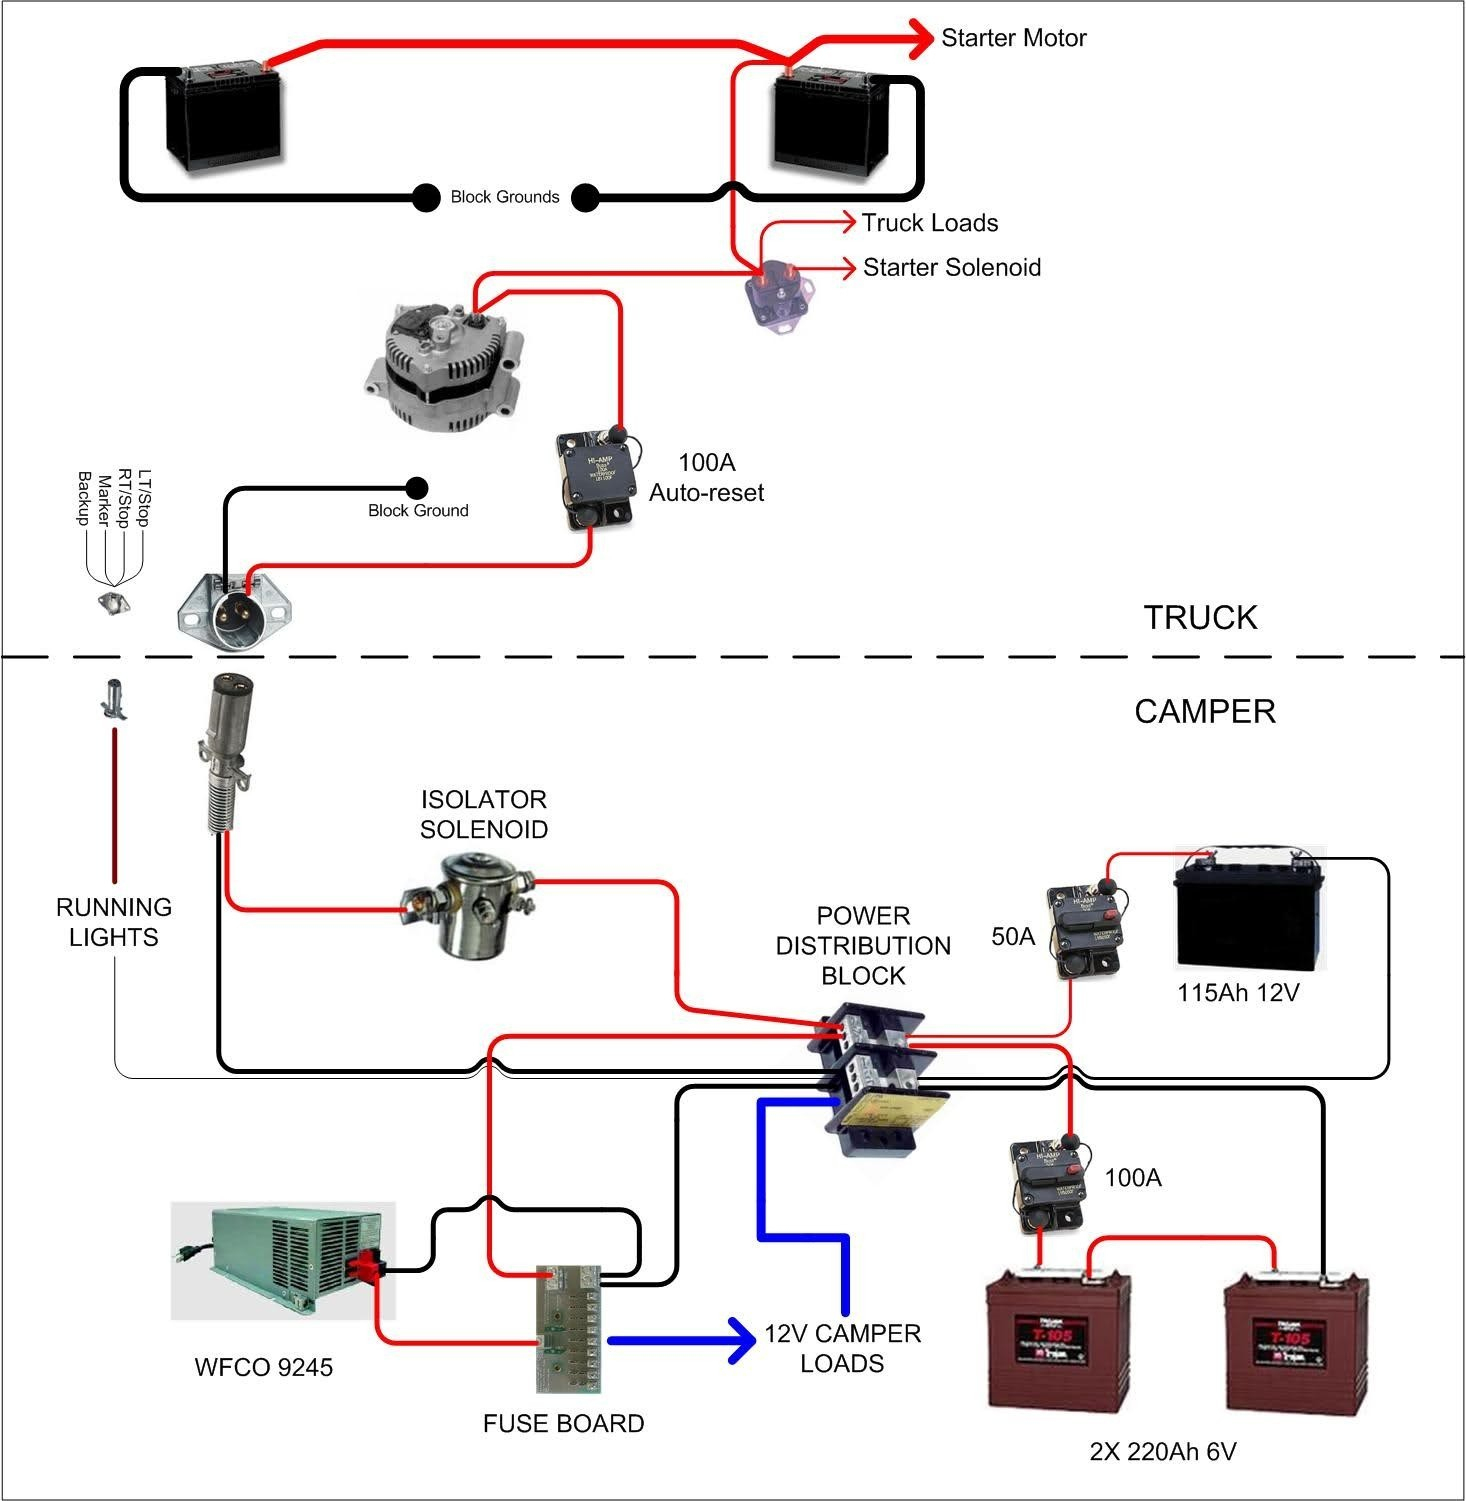 Wiring Diagram For Snowmobile Trailer | Wiring Diagram - Snowmobile Trailer Wiring Diagram